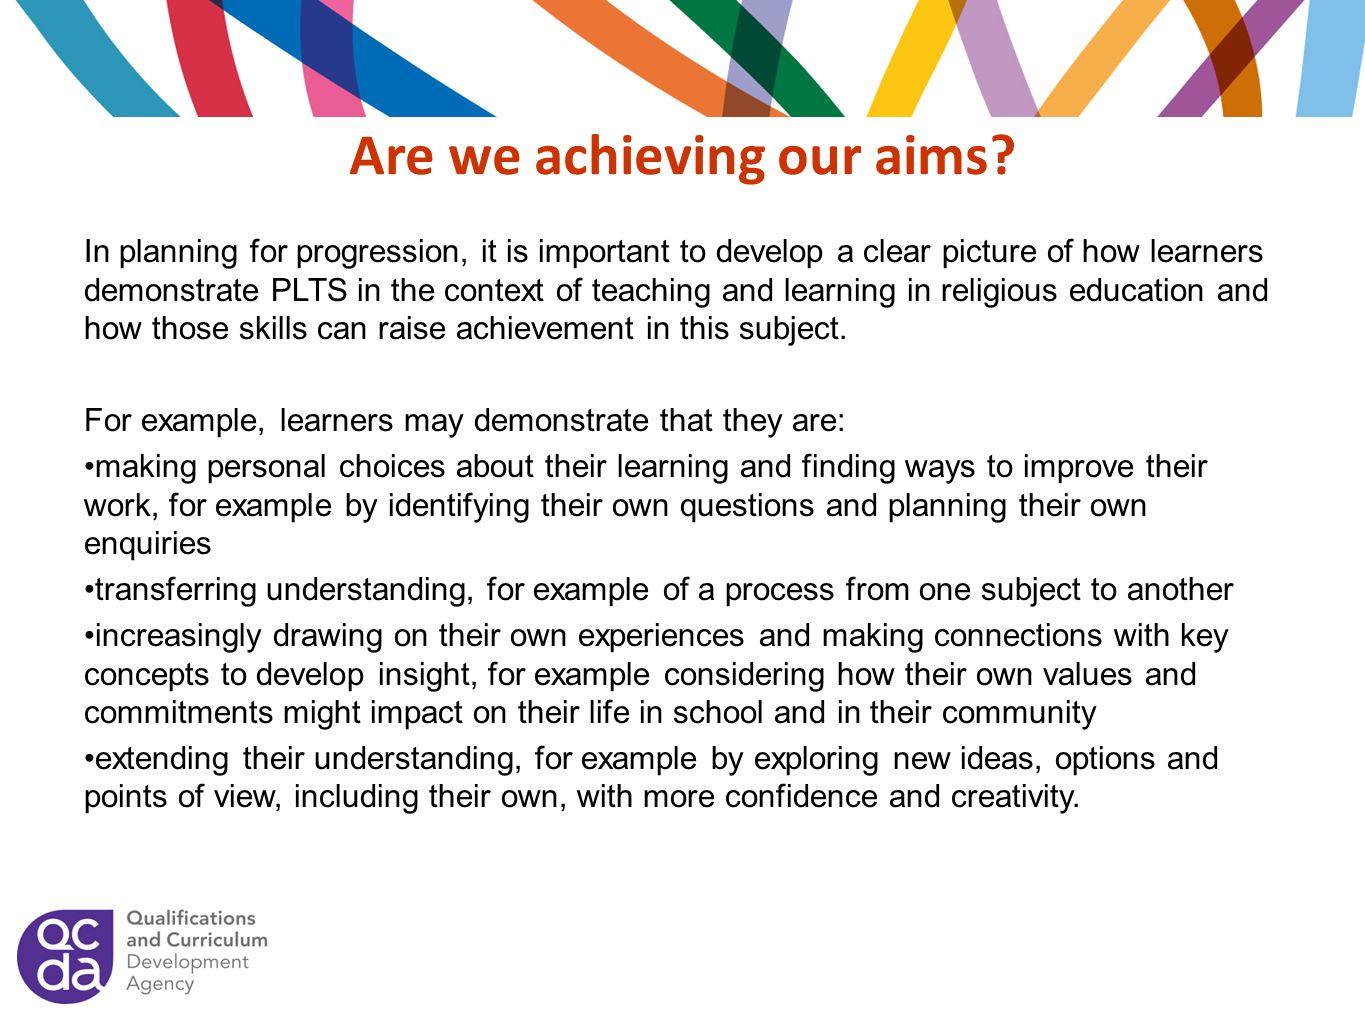 Are we achieving our aims